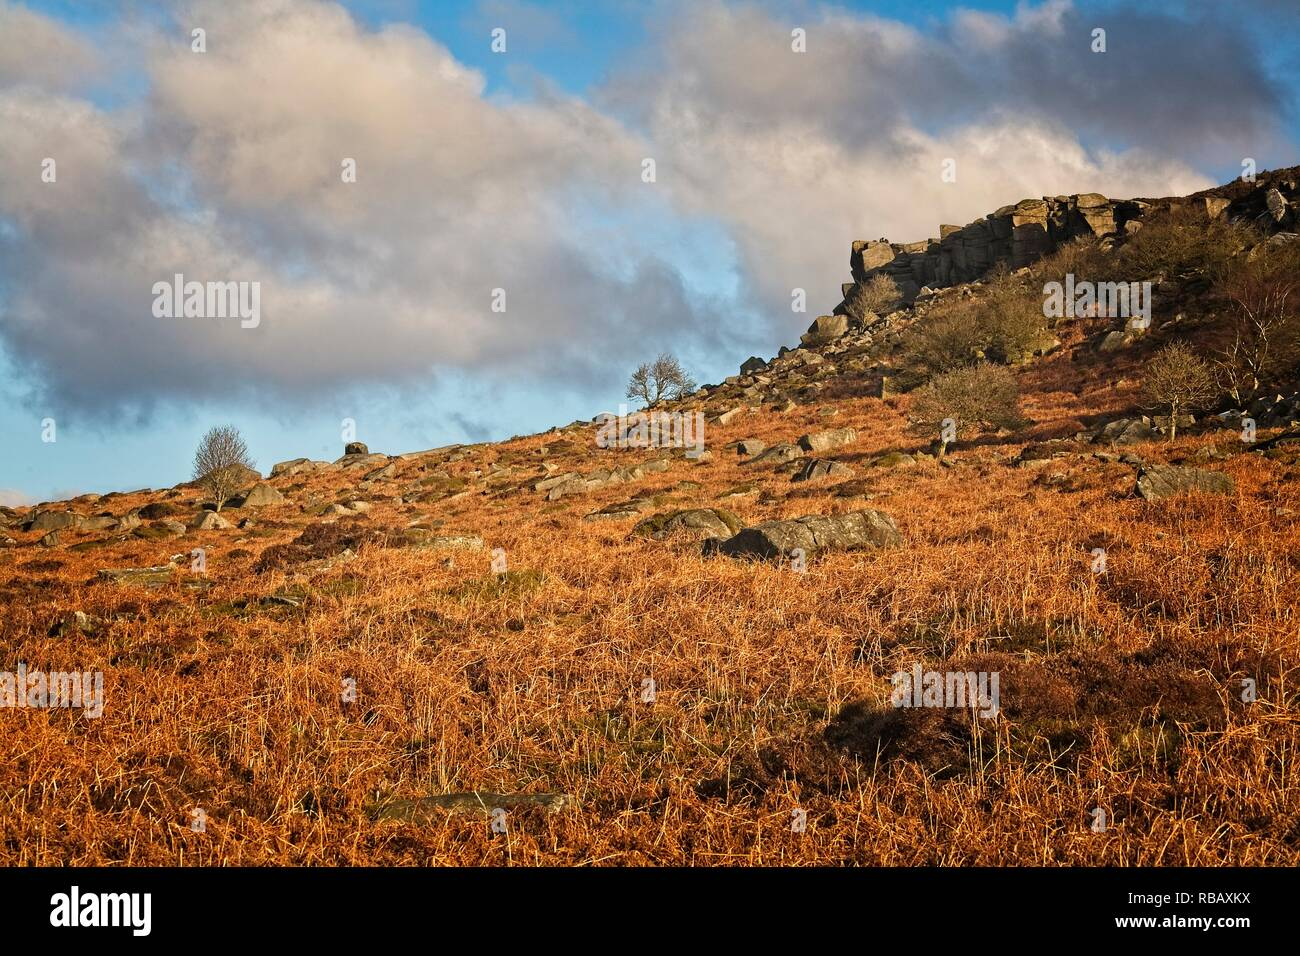 GRITSTONE SCARP SLOPE WITH BRACKEN COVERED SCREE BELOW A MOORLAND LANDSCAPE IN THE SUNSHINE - Stock Image